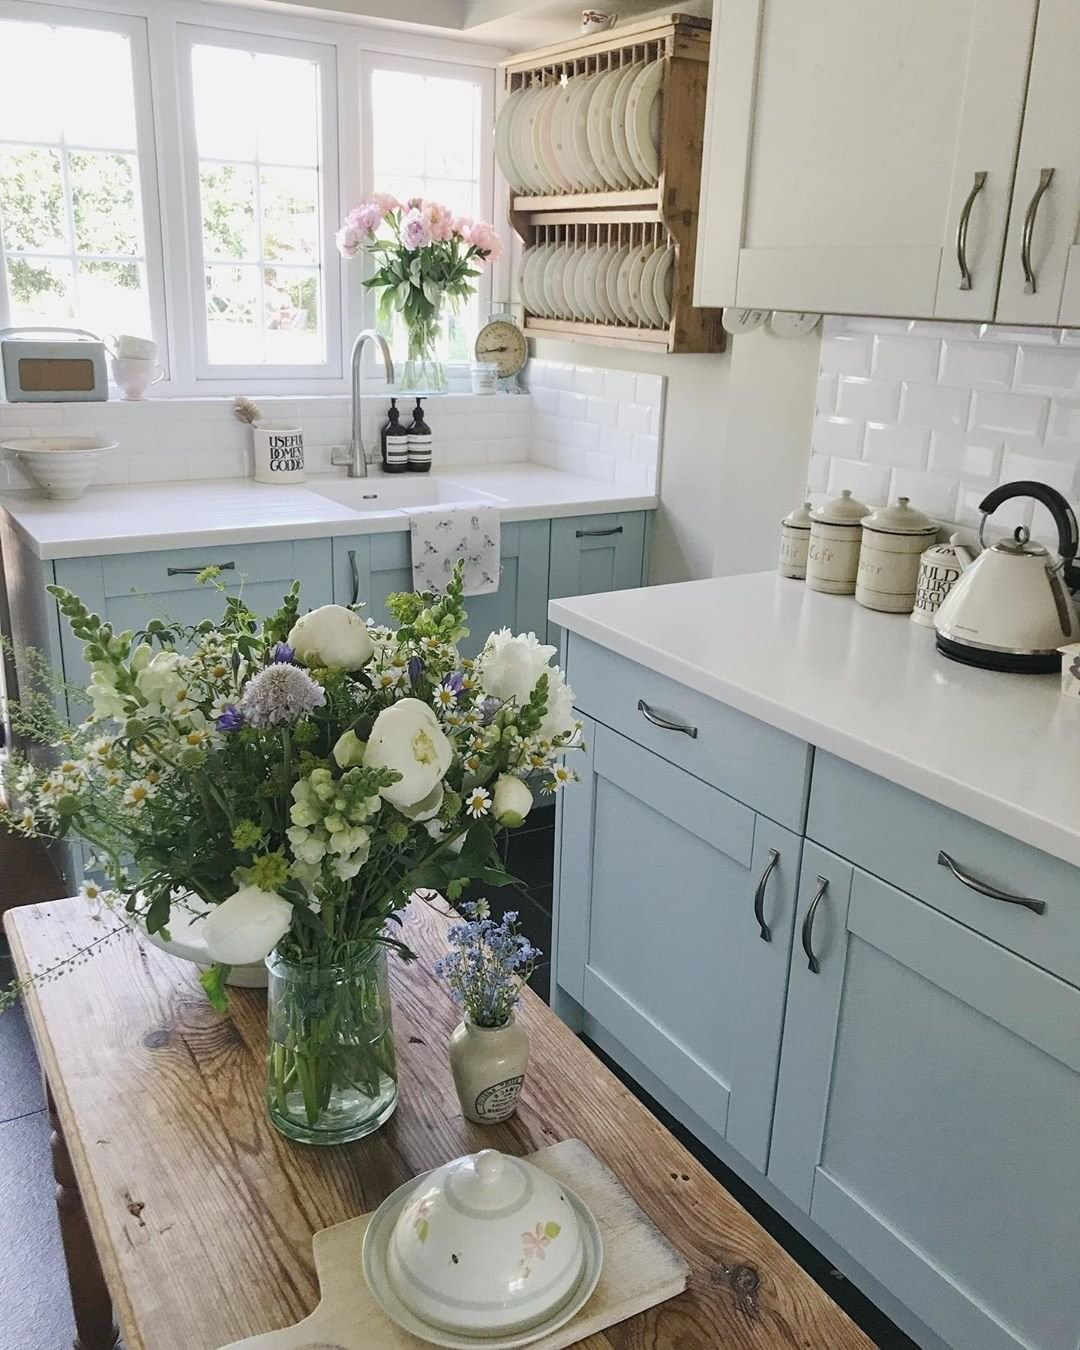 Better Homes Gardens On Instagram Fresh Flowers And Colorful Cabinets Are Always A Good Choice Cottage Style Kitchen Cottage Kitchens Kitchen Inspirations